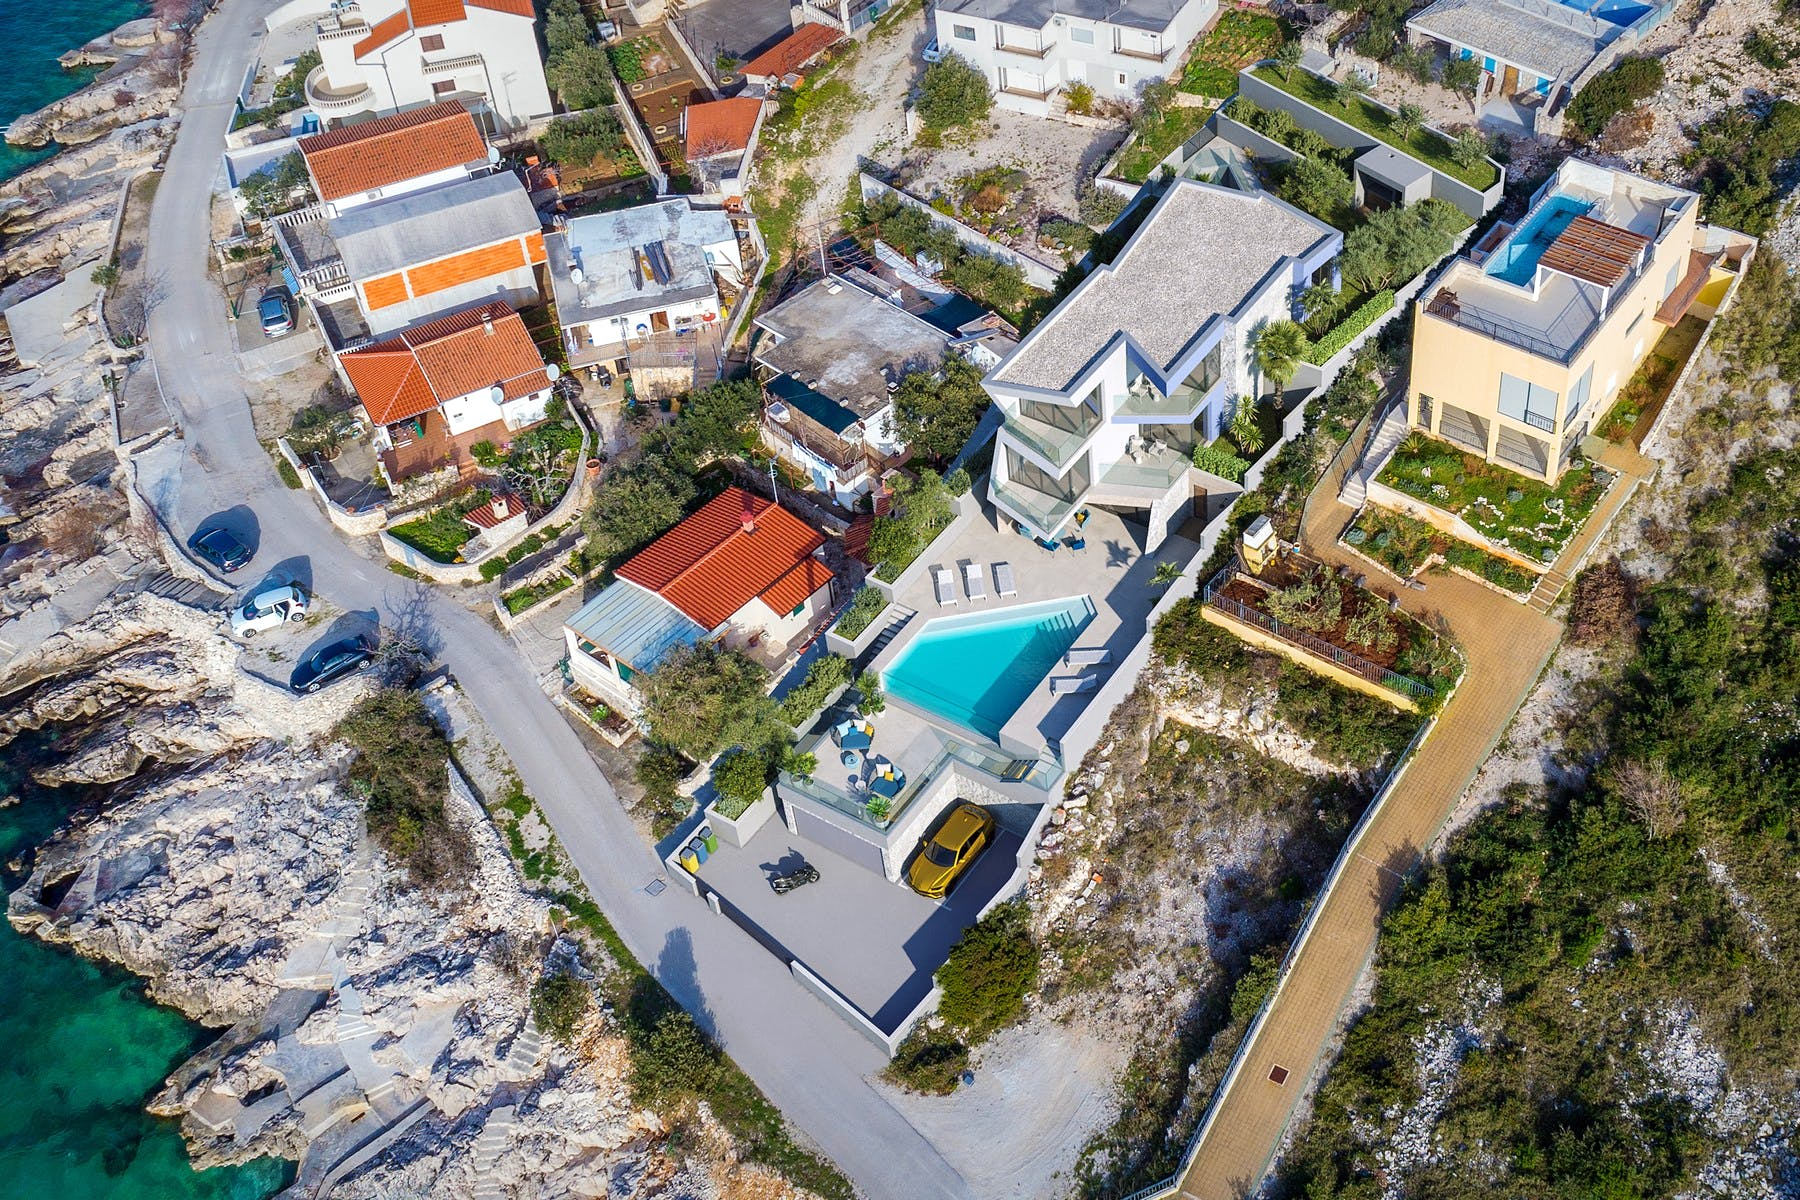 Luxury villa with swimming pool under construction